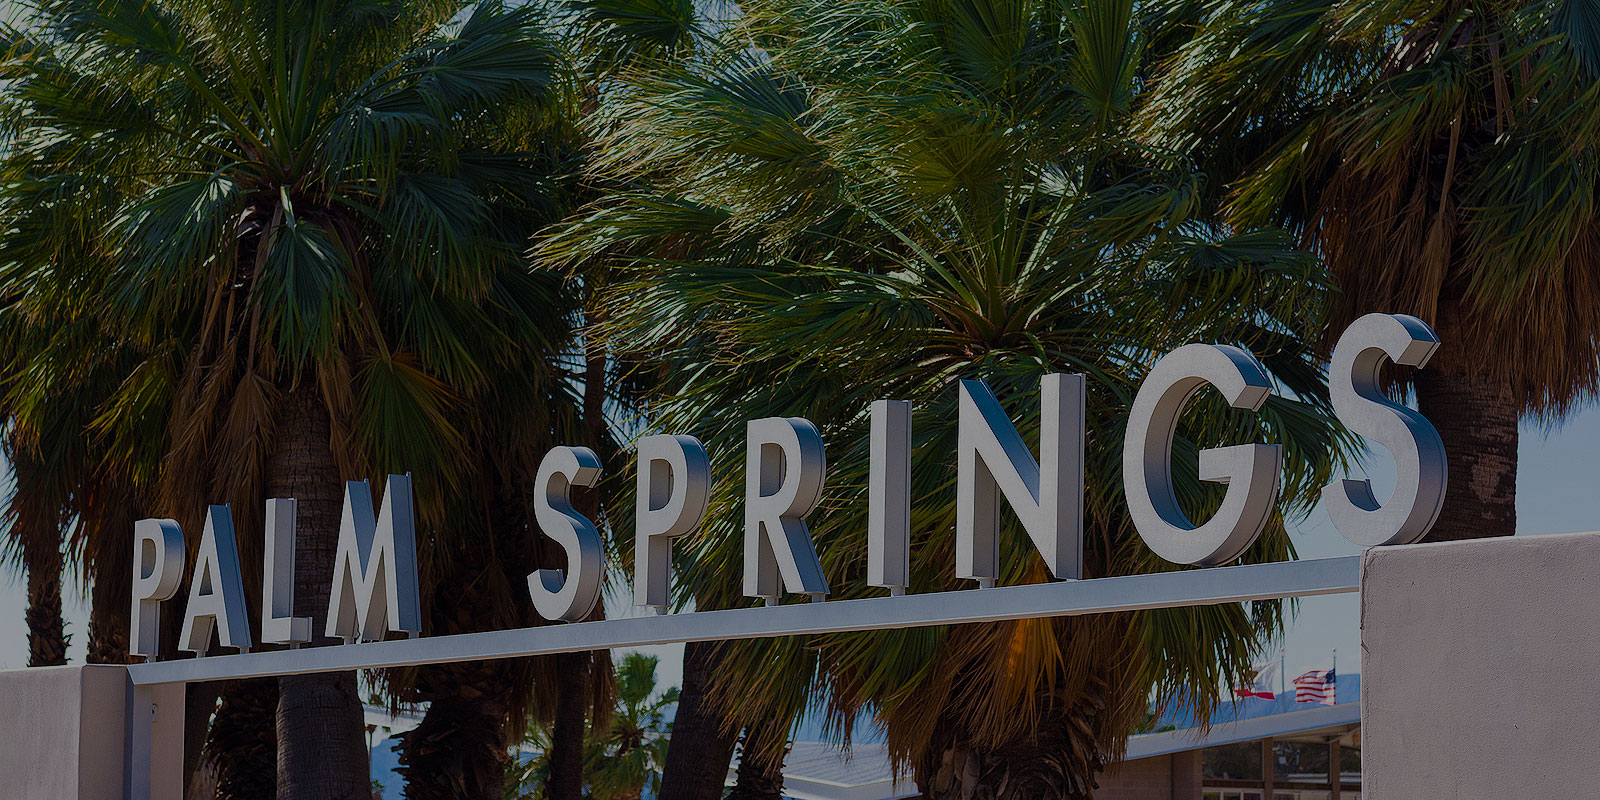 Palm Springs Real Estate for Buyers & Sellers